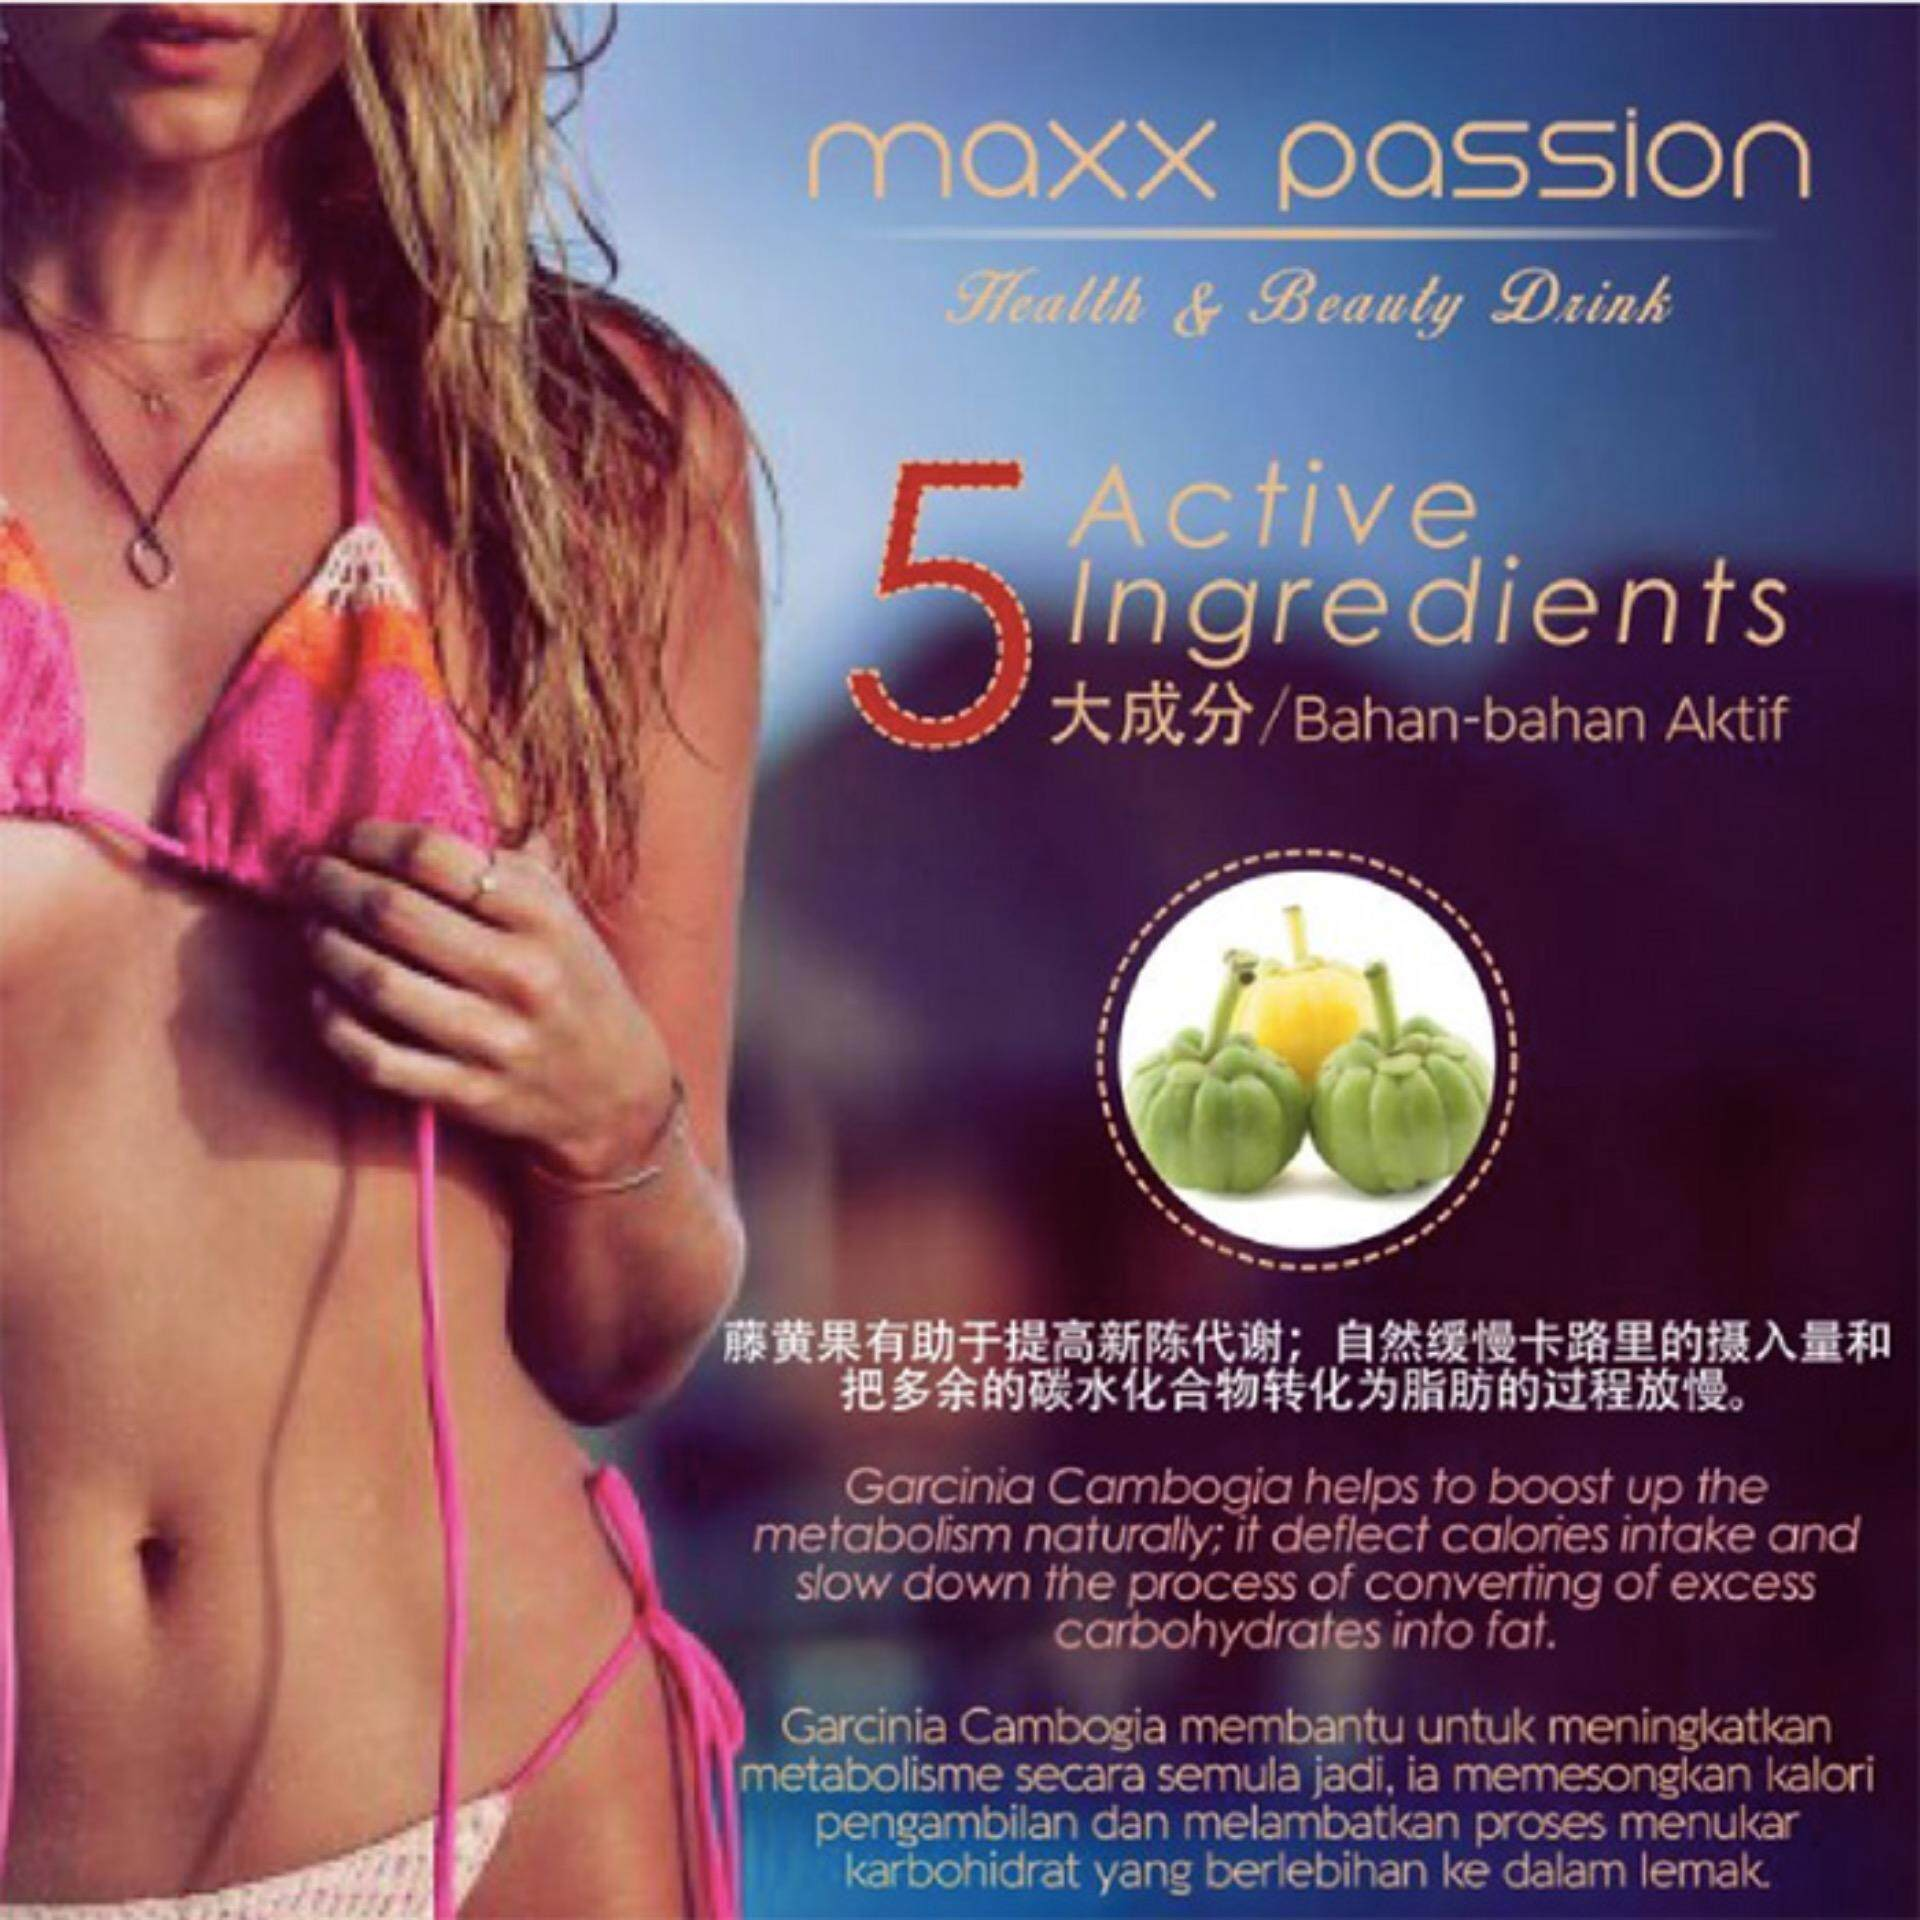 Maxx Passion Healthy and Beauty Drink – Buy 1 Box GET 3 Sachets of Phyto Clear